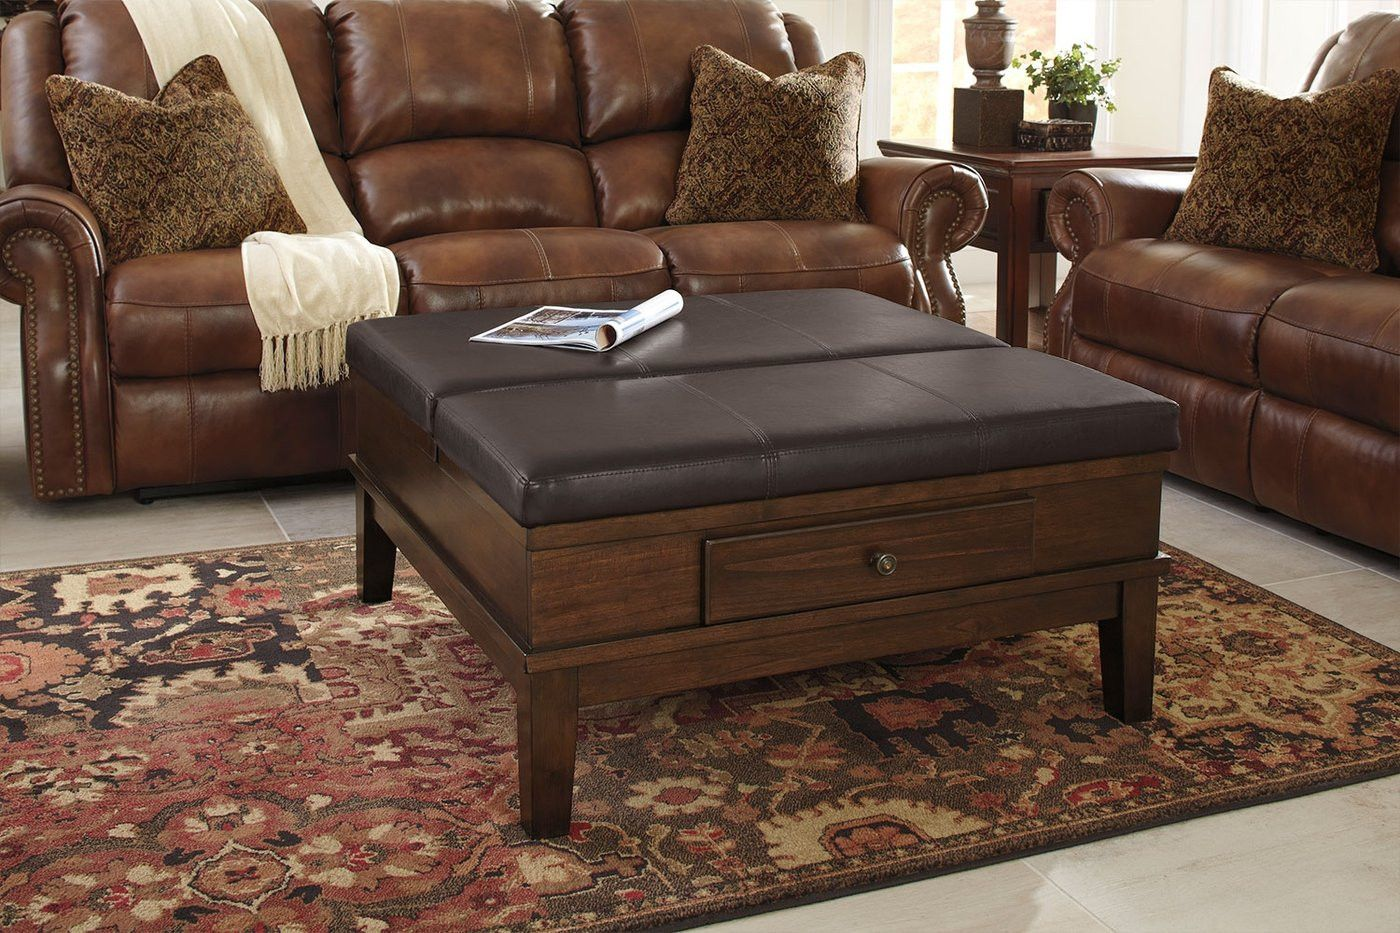 19 Awesome Gately Coffee Table Image Ashleyfurnituregatelycoffeetable Gatelycoffeetable Gat Ottoman Coffee Table Ottoman Table Leather Ottoman Coffee Table [ 933 x 1400 Pixel ]